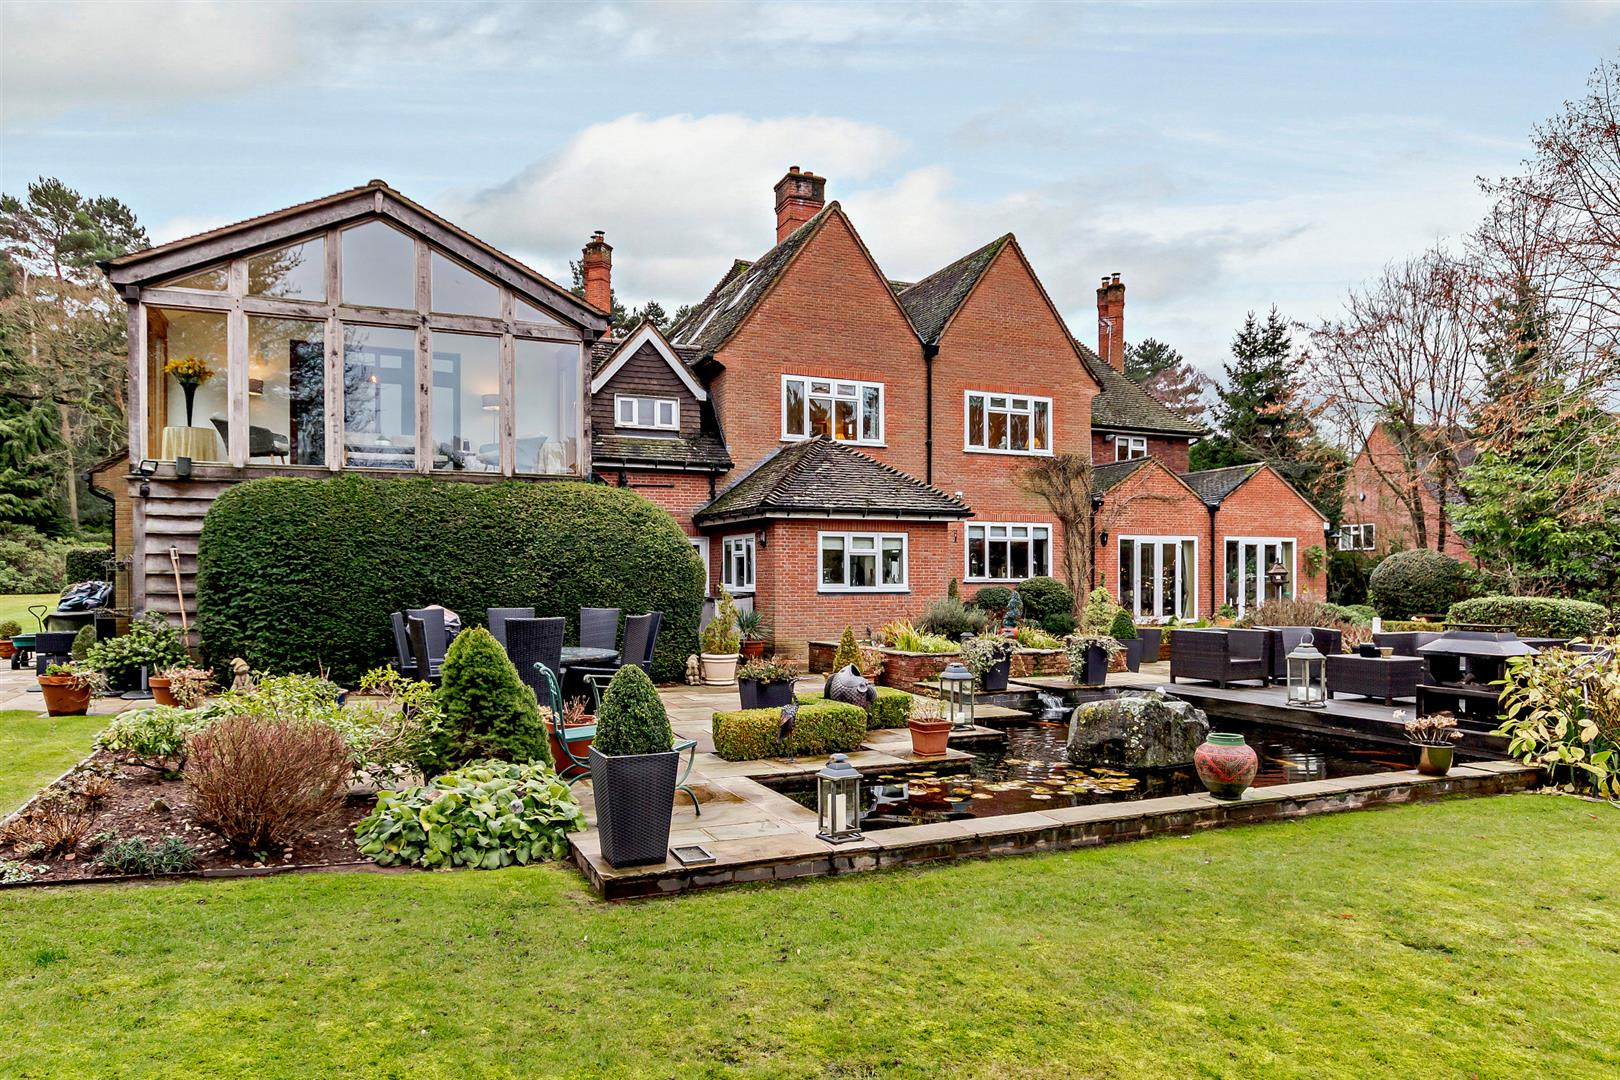 Worcestershire tudor period country home with al fresco dining terrace